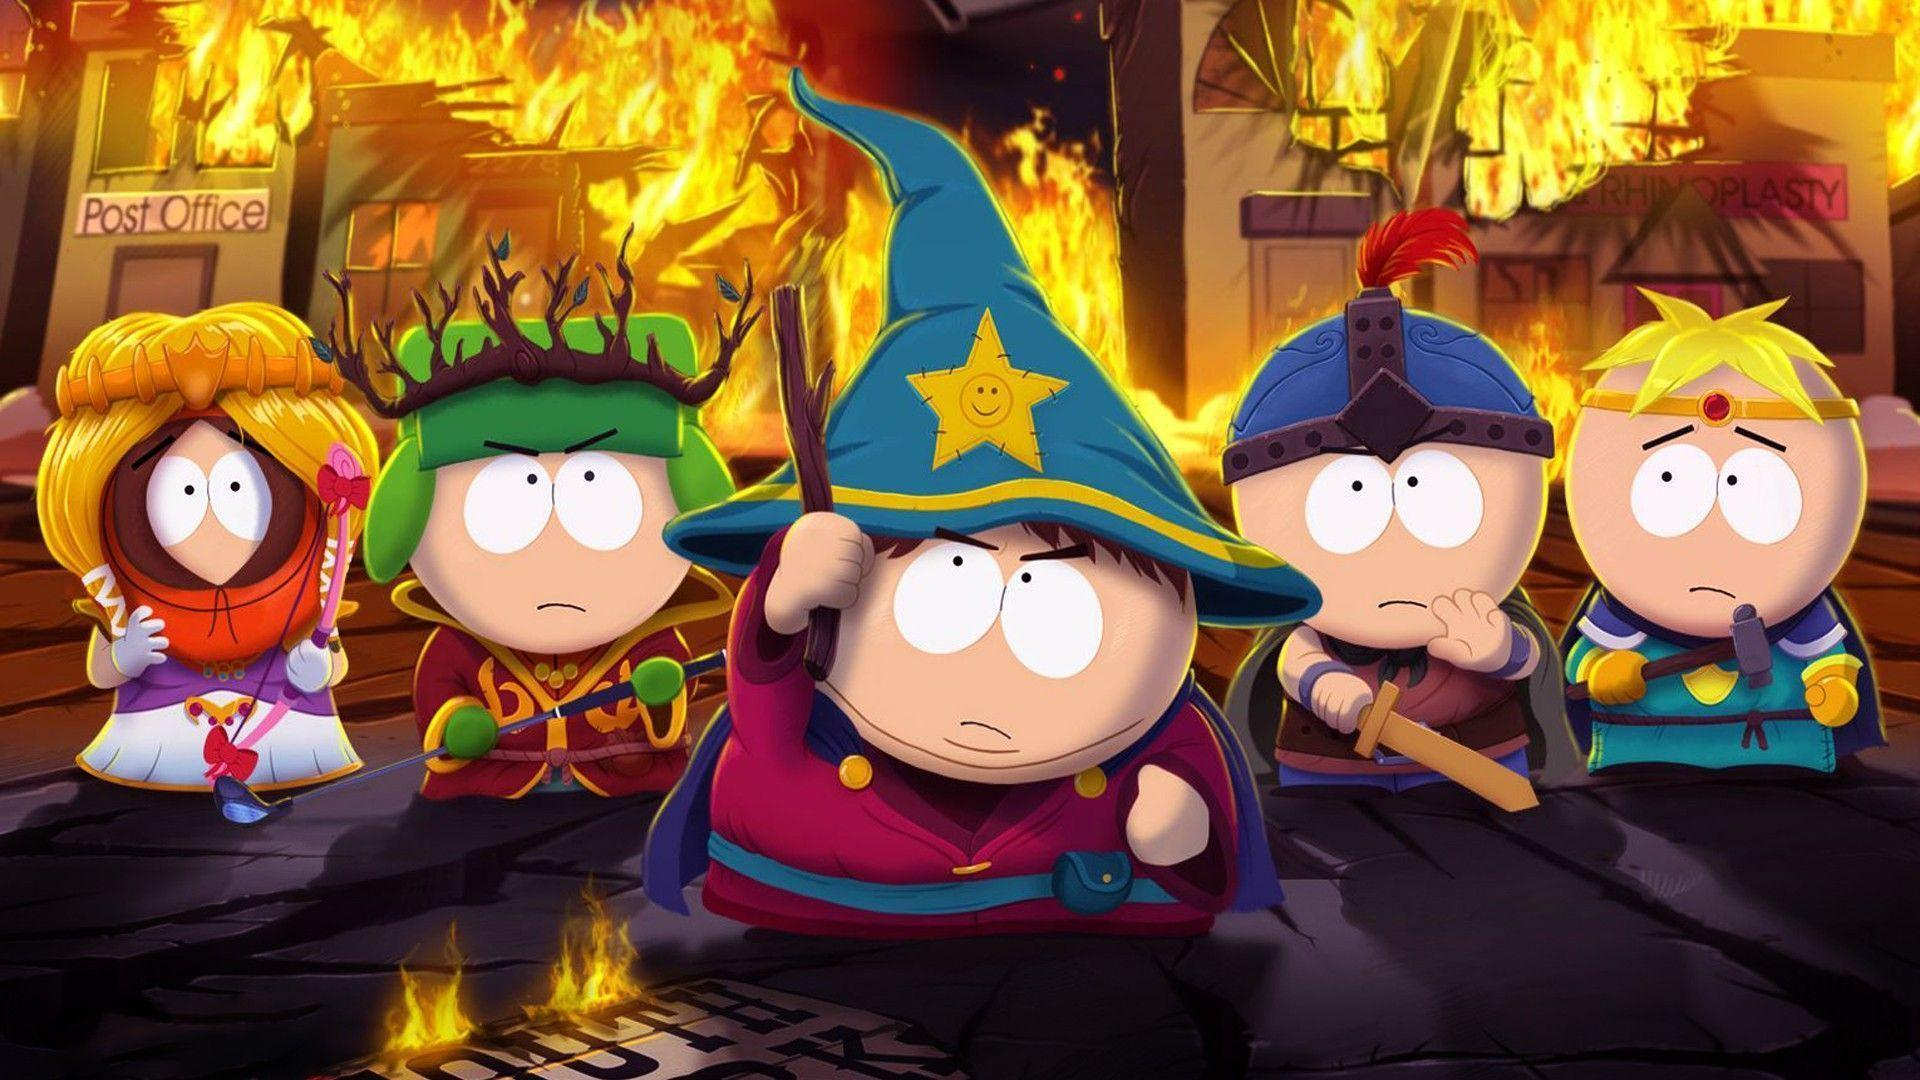 Funny South Park Wallpaper 23 Funny South Park Wallpaper Car Pictures